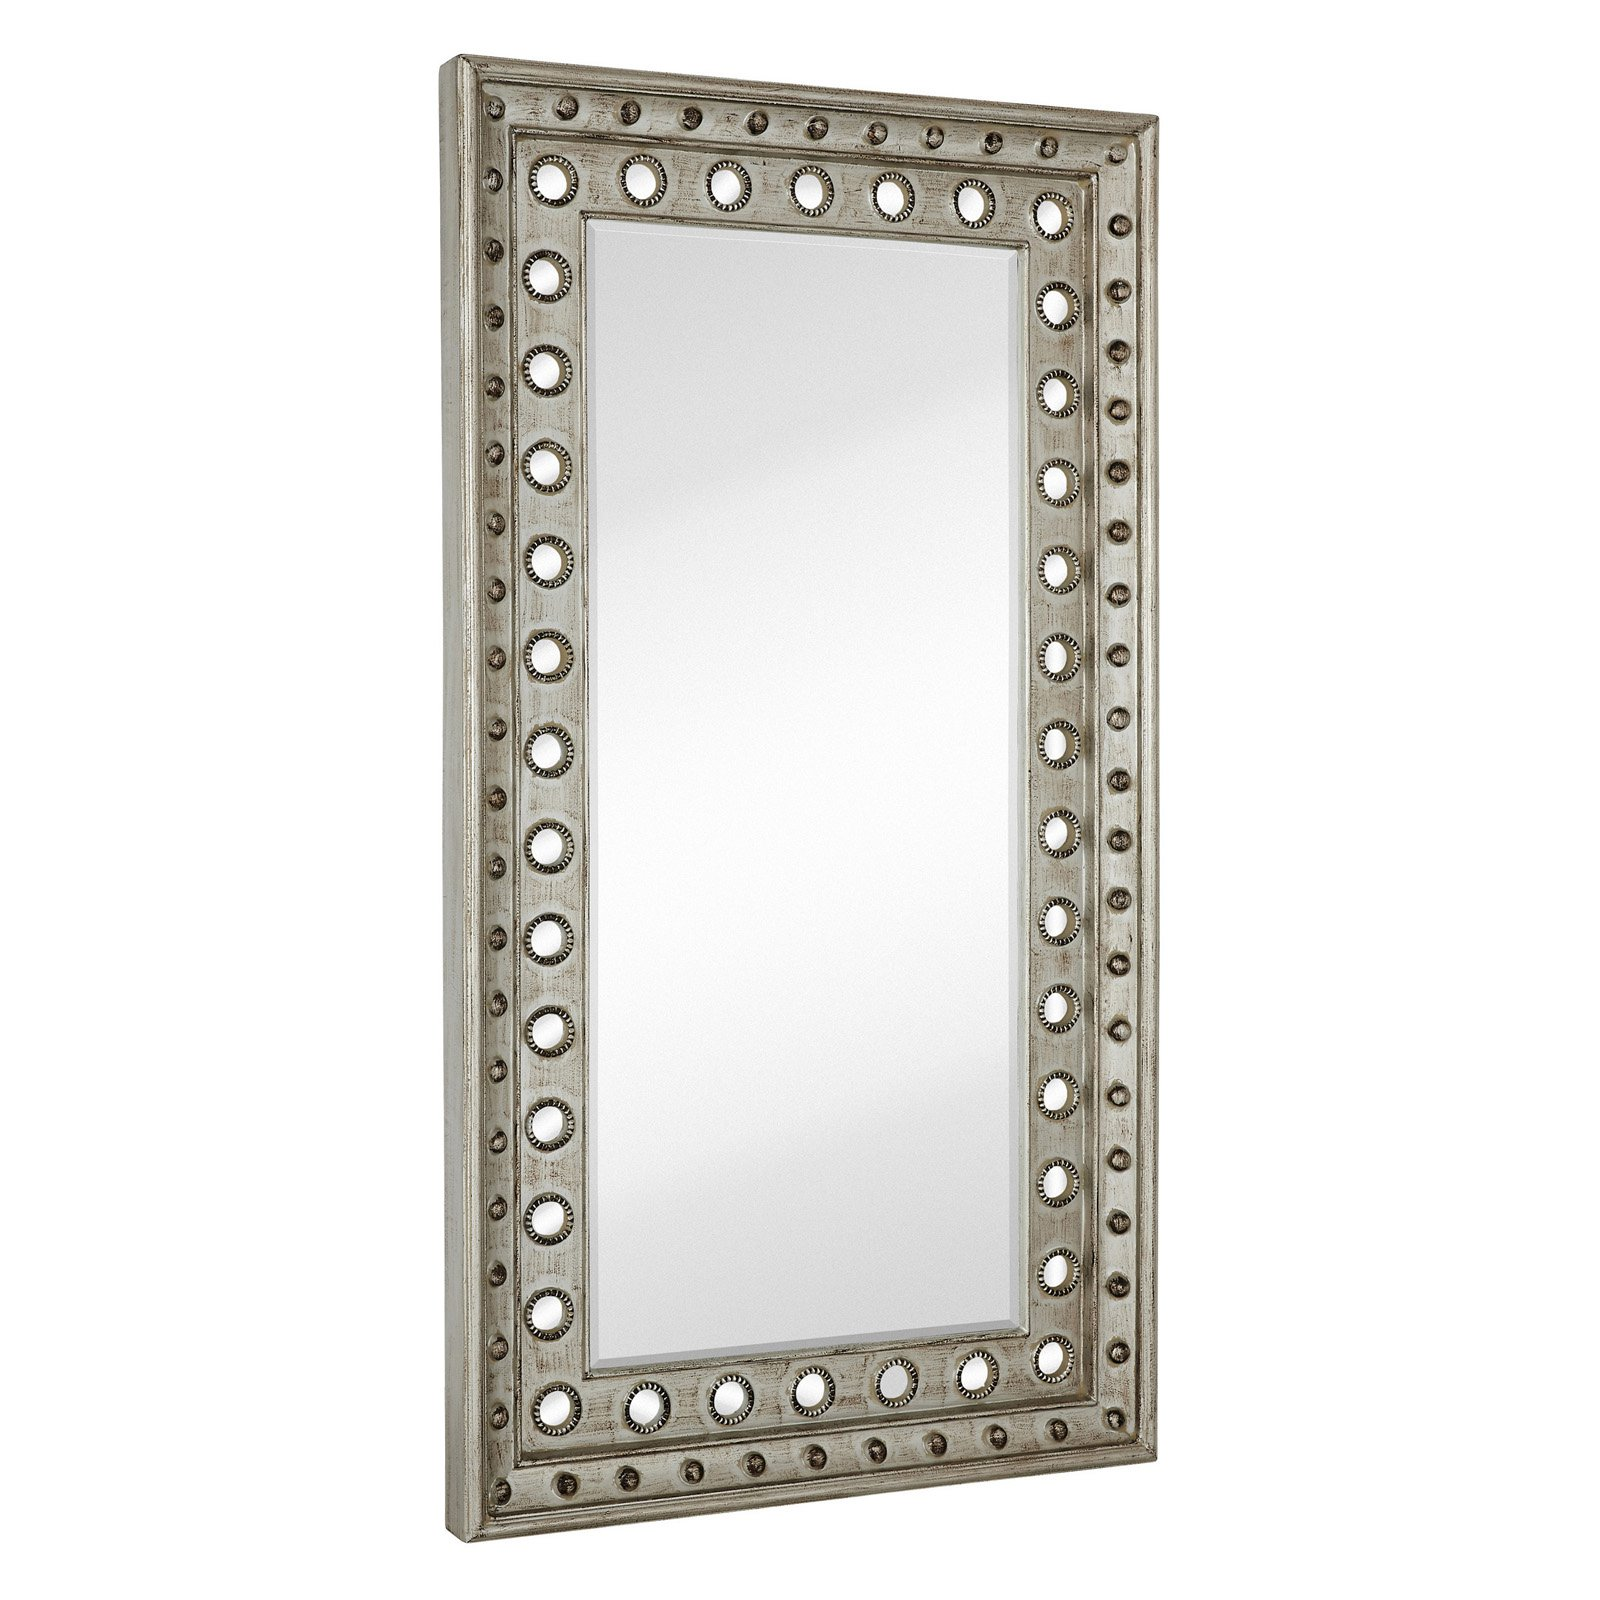 Majestic Huge Rectangular Beveled Glass Decorative Wall Mirror